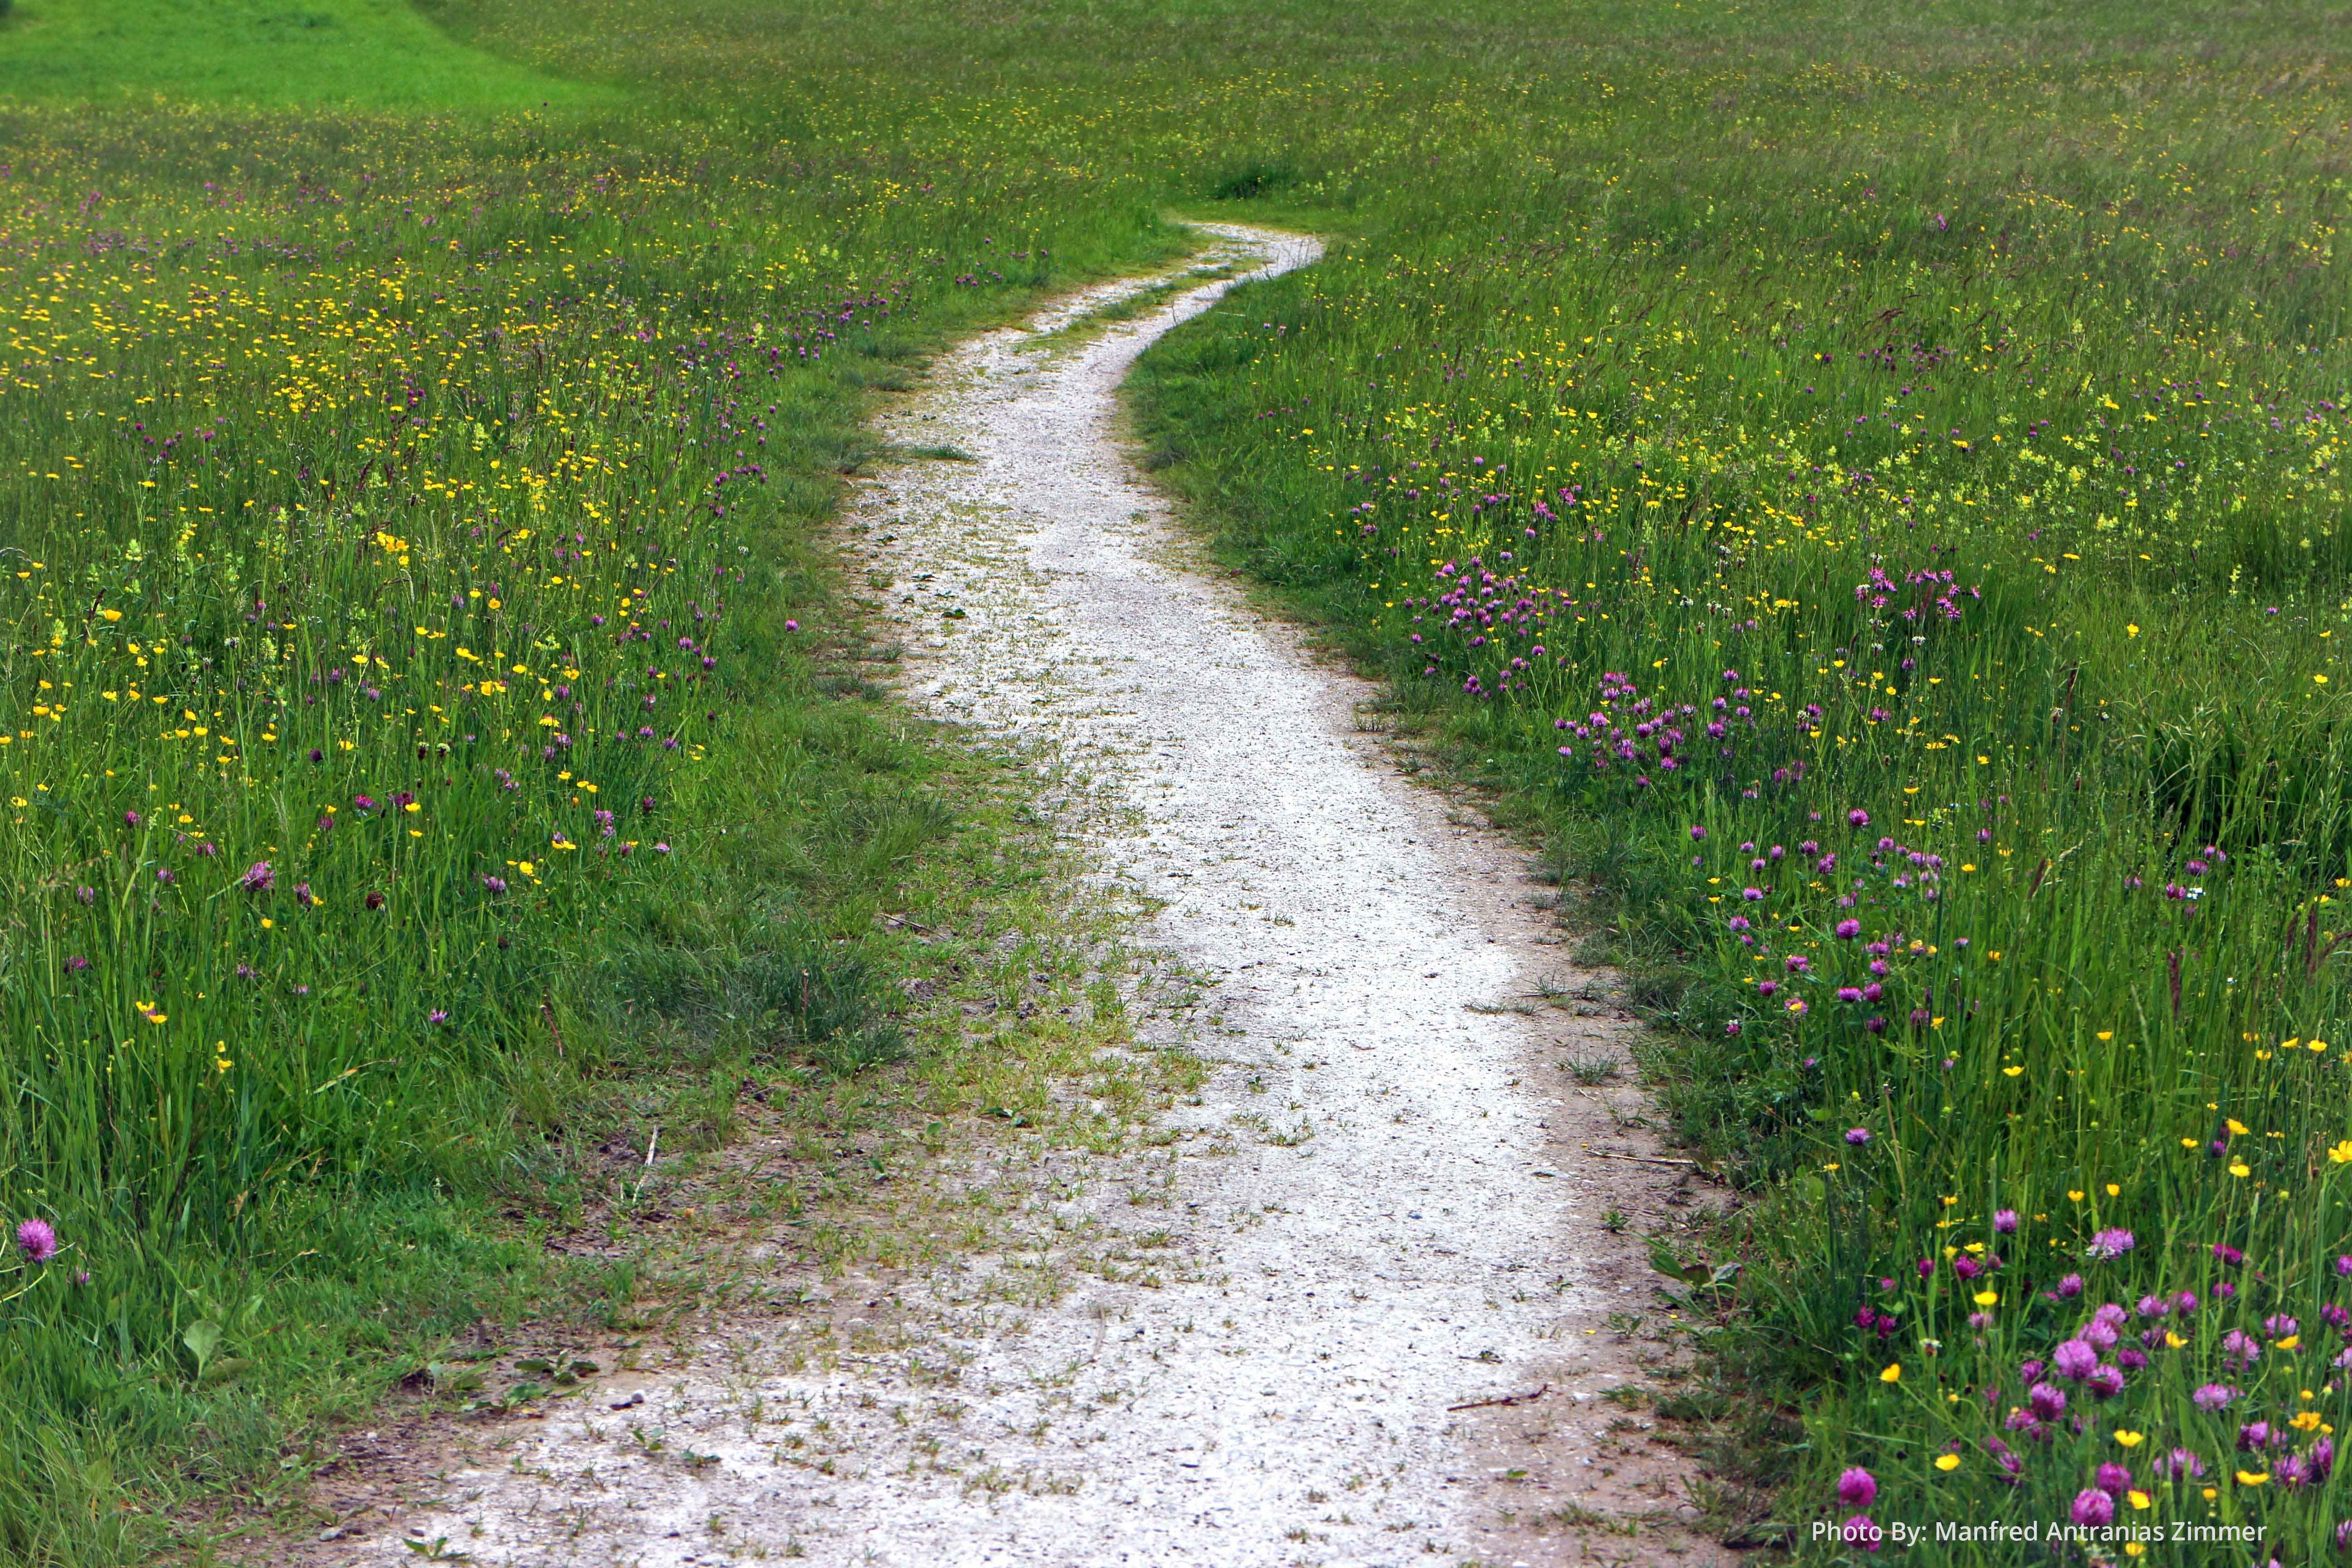 A sandy path winds through green grass and wildflowers. It looks inviting.